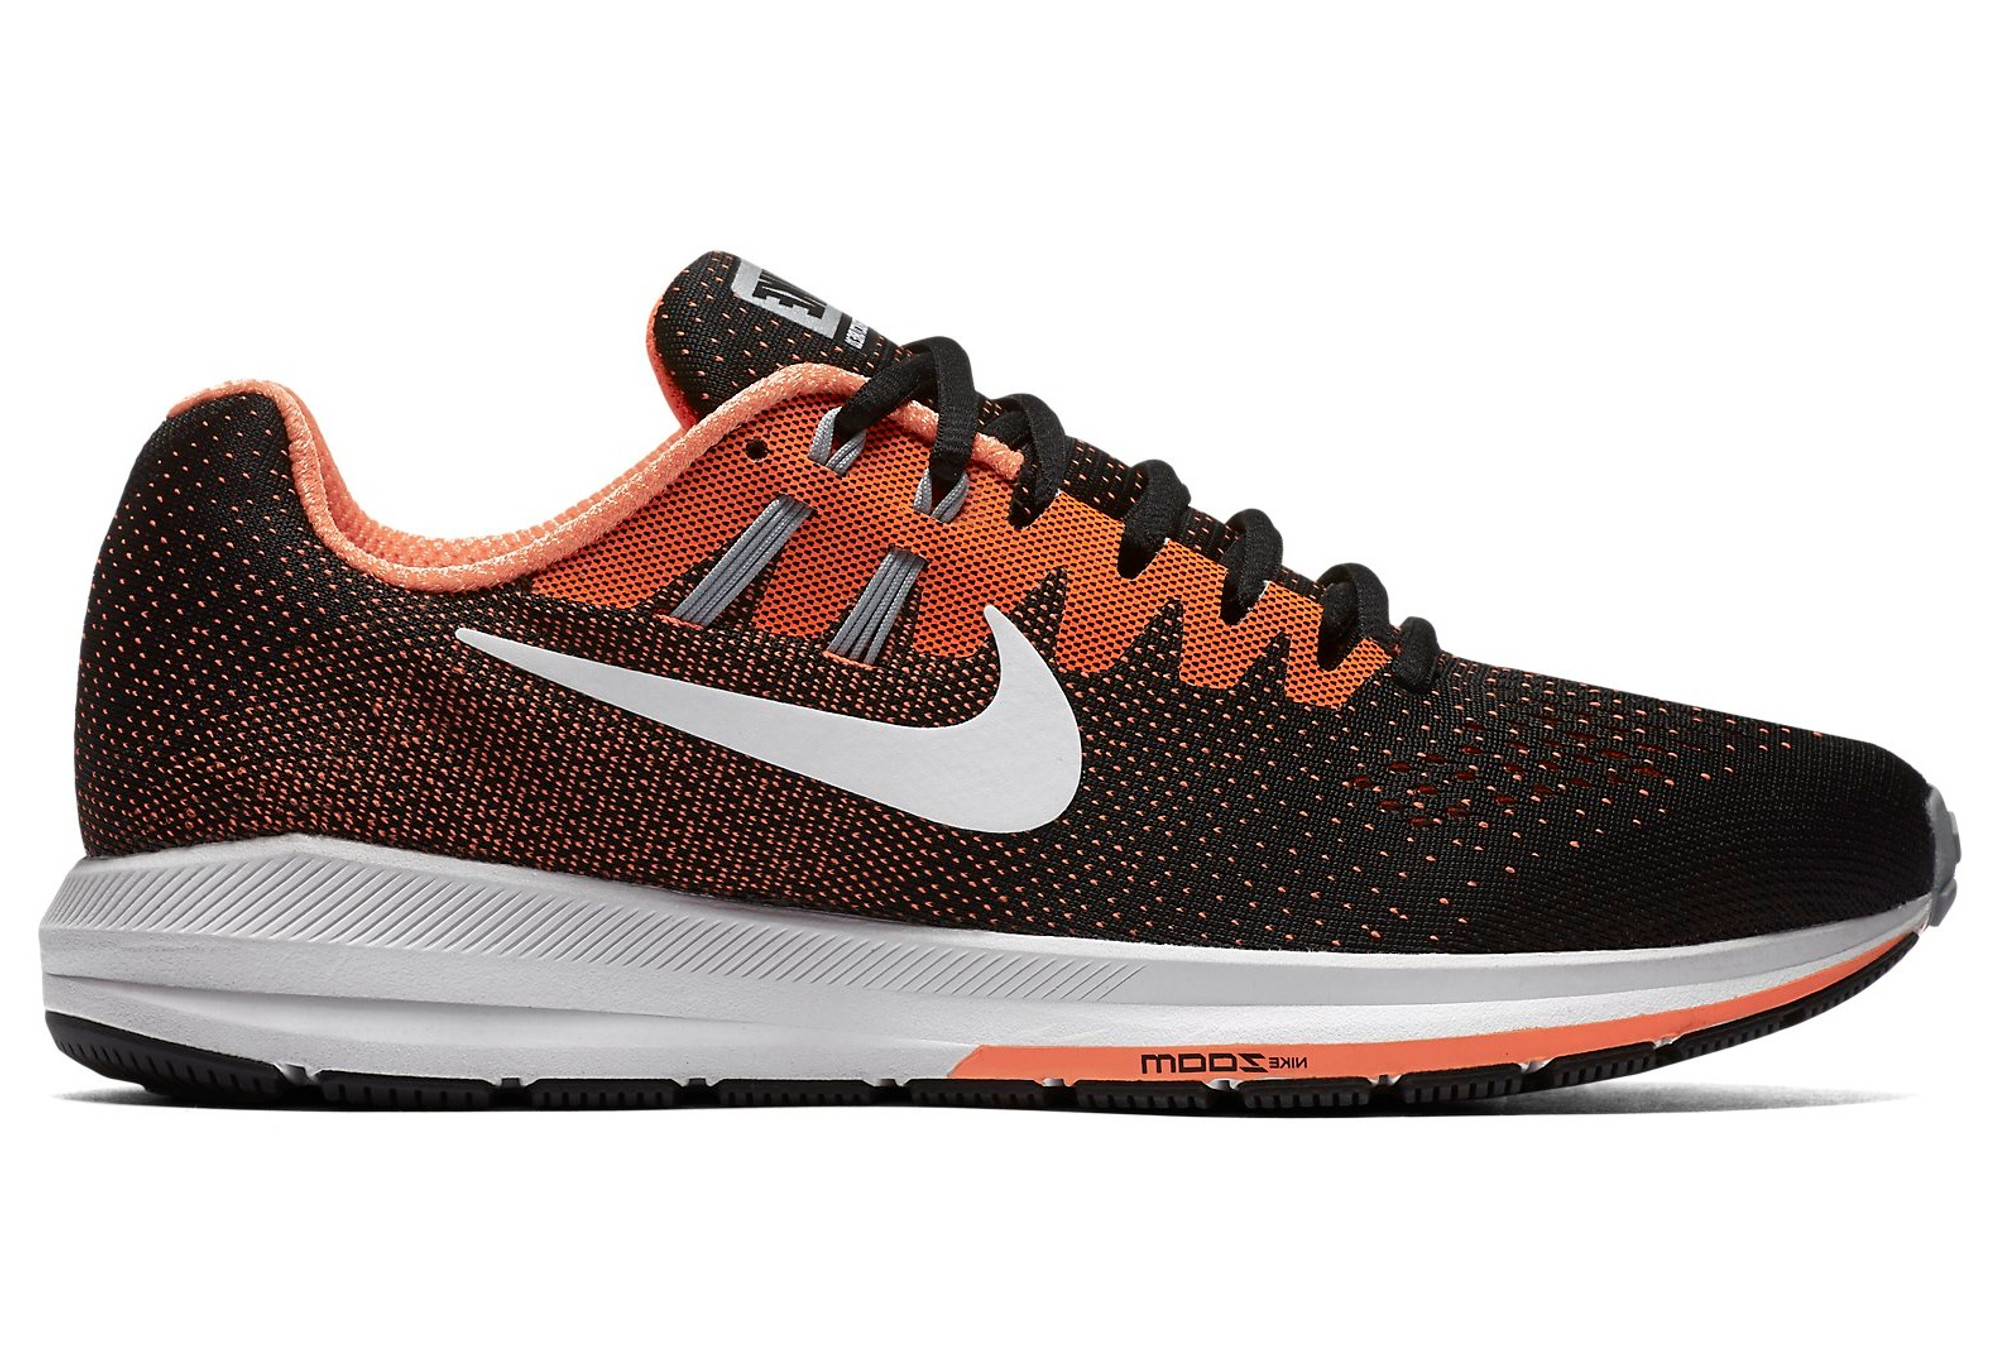 official photos 4a6b4 4f61d Chaussures de Running Nike Air Zoom Structure 20 Noir   Orange